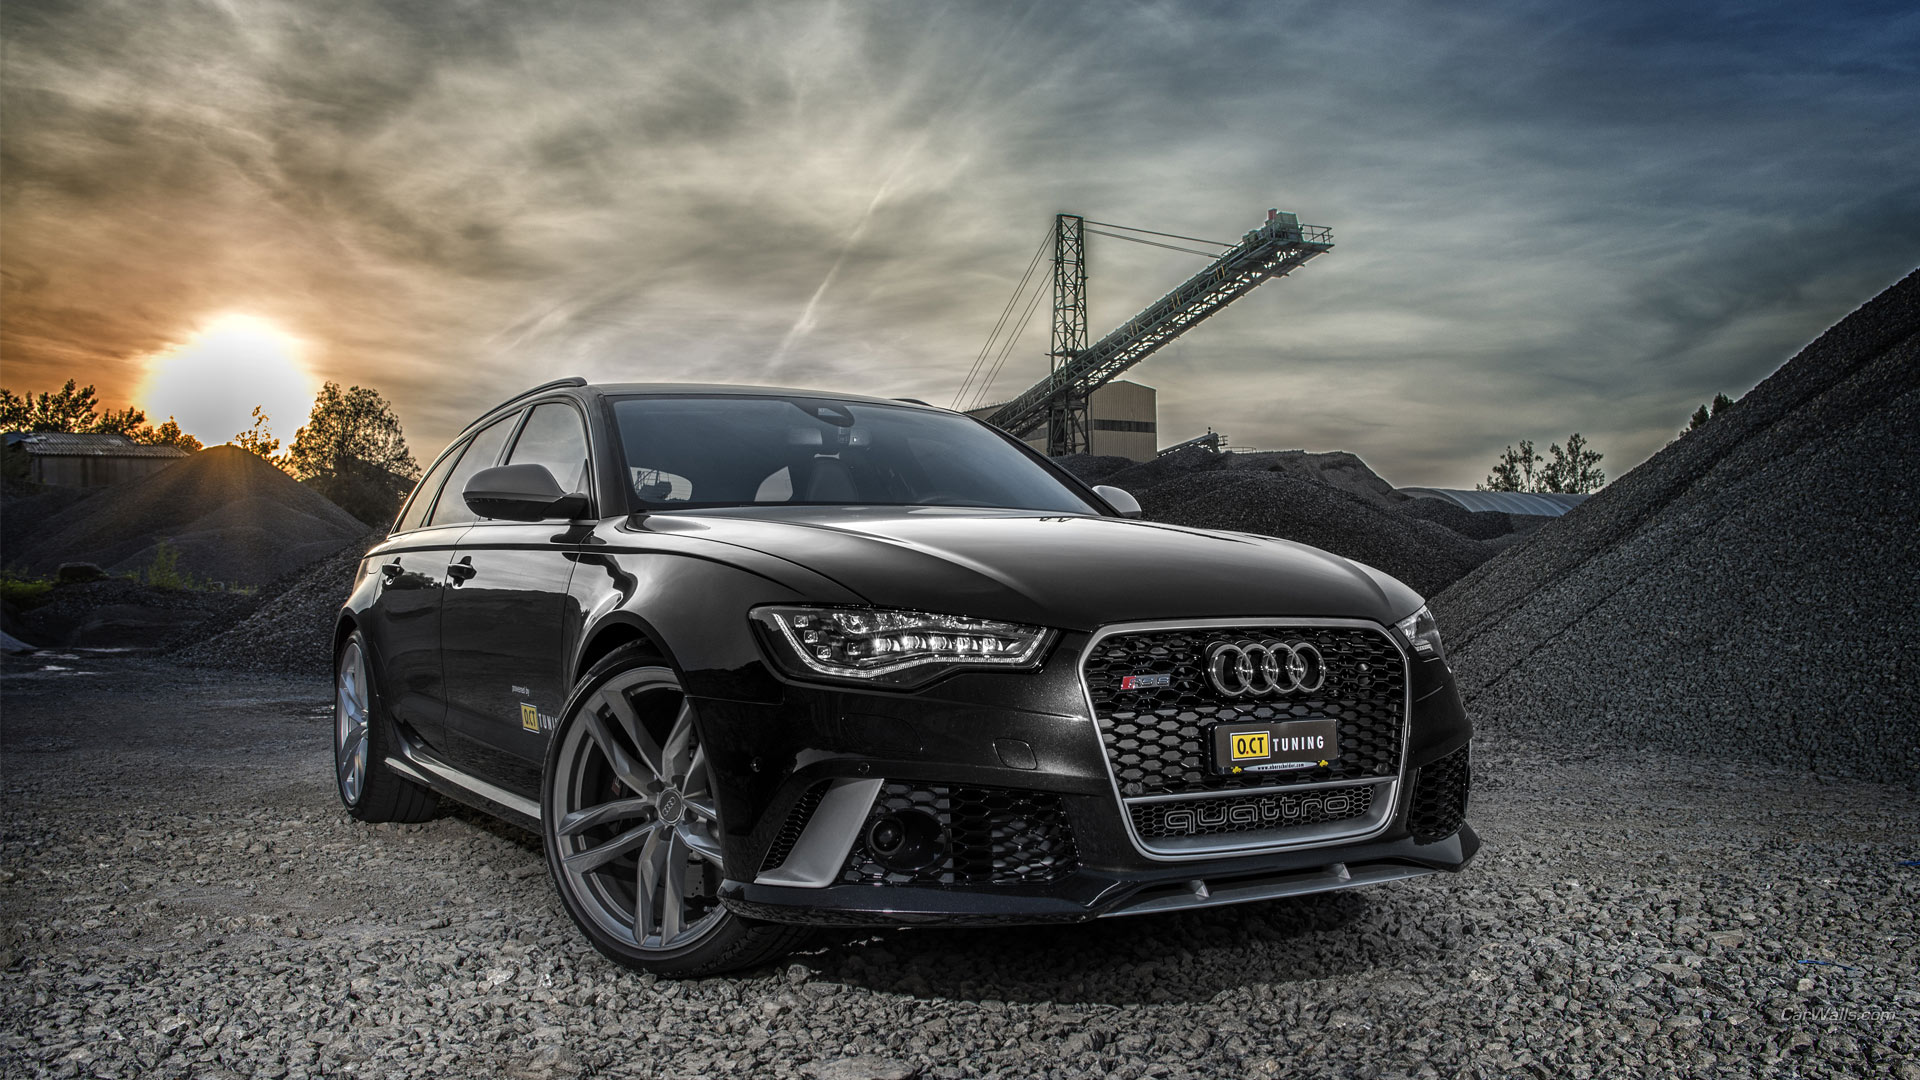 1920x1080 - Audi RS6 Wallpapers 23